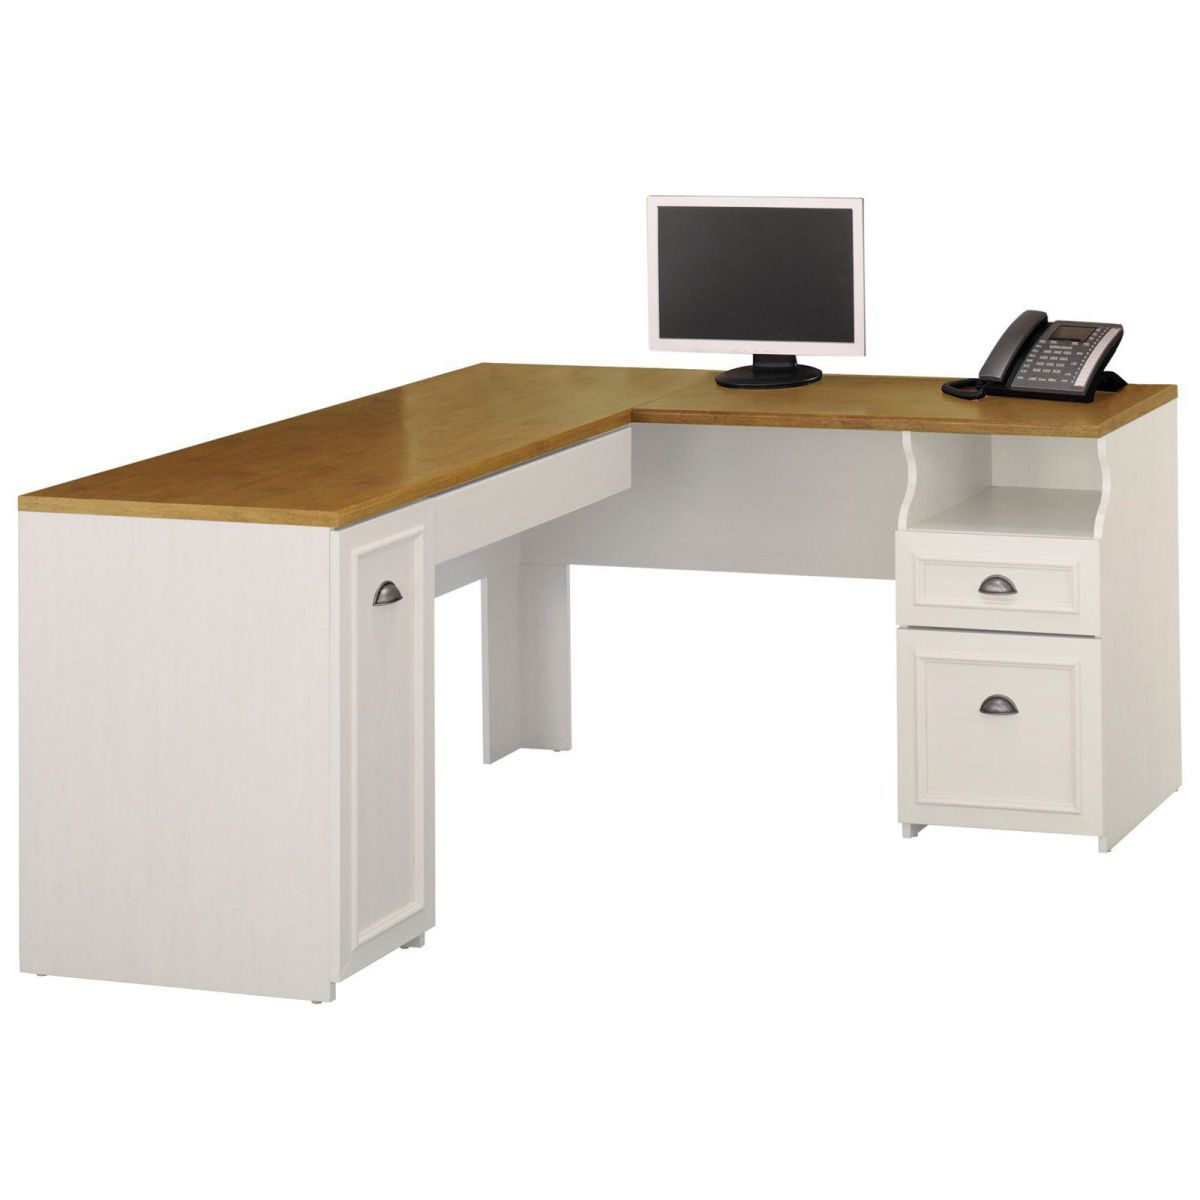 White Computer Desks For Home Office. Service Desk Operator Job Description. Kitchen Drawer Organizer. Cool Desk Fan. 12 Inch Drawer Pulls